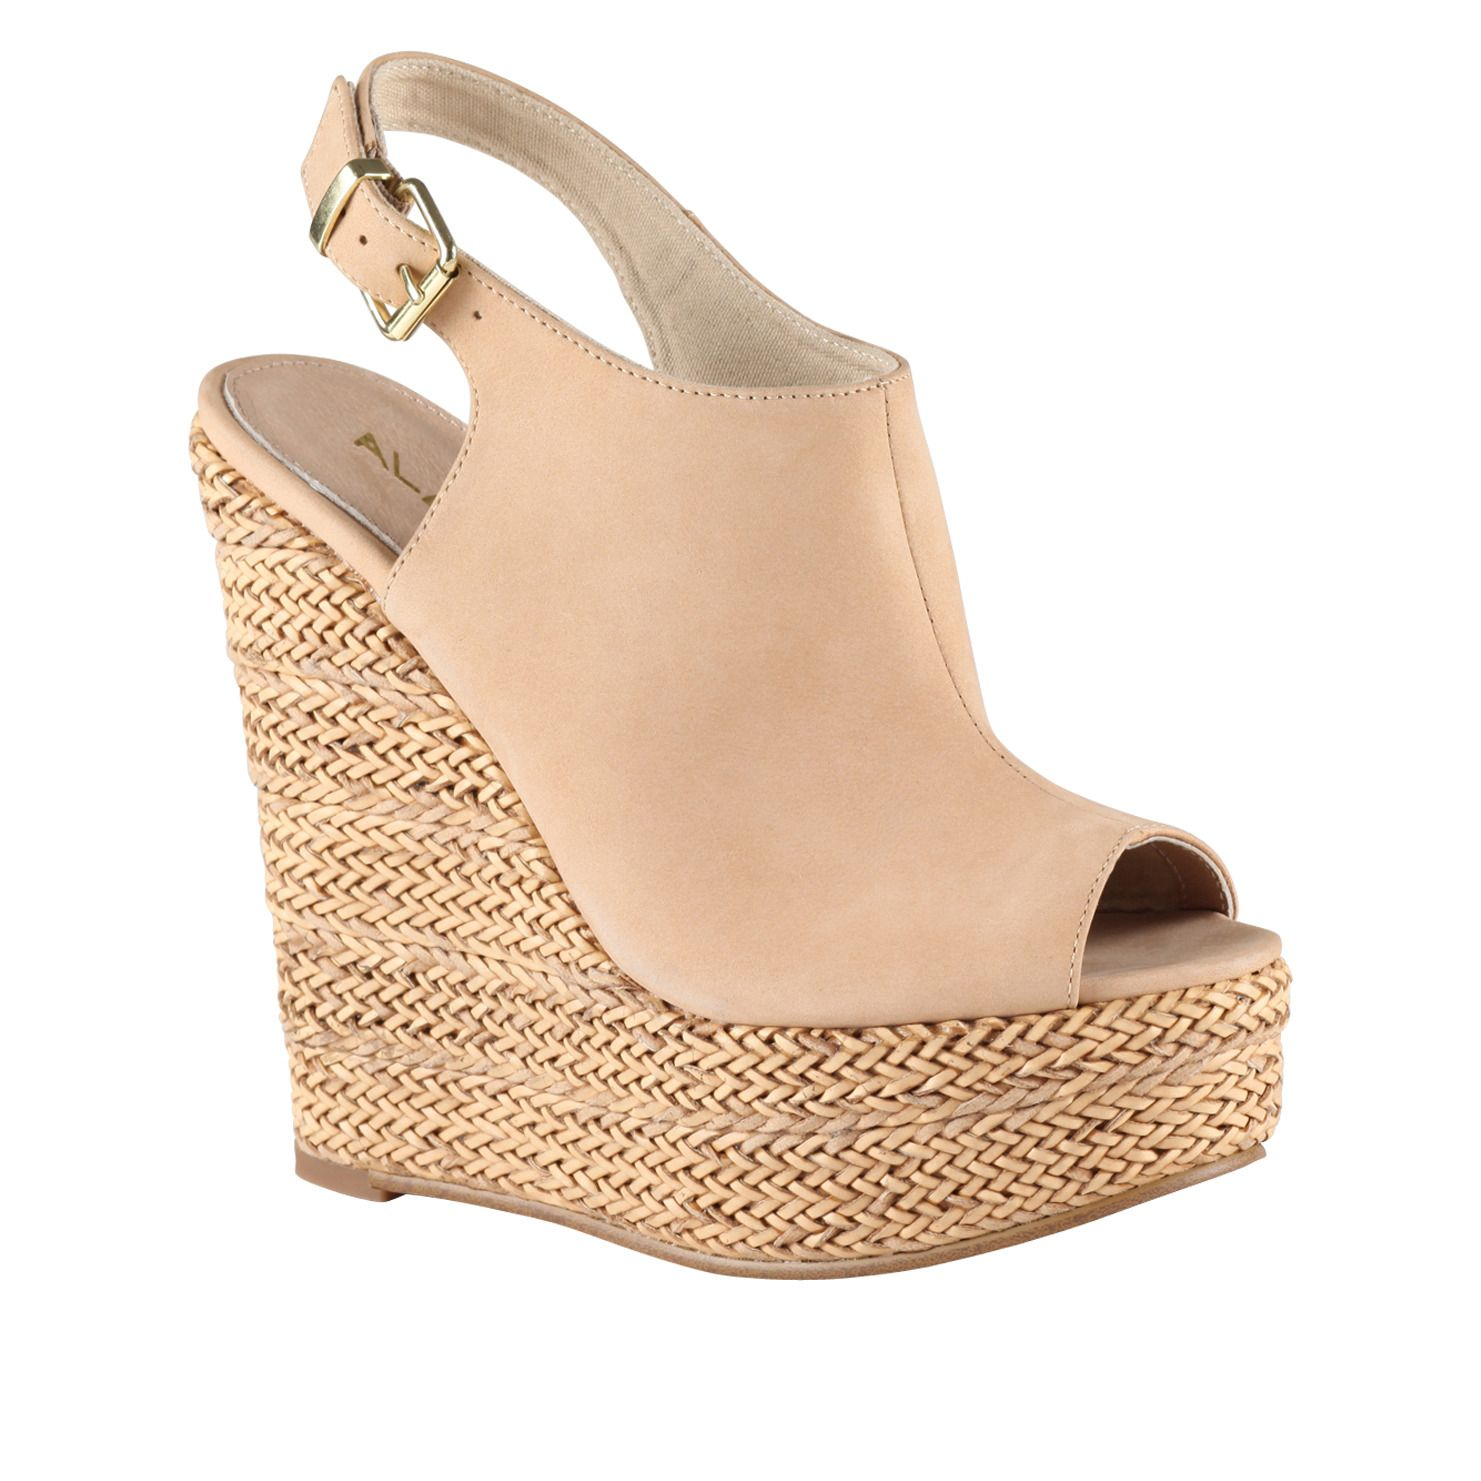 a52779891df2 CARNETT - women's wedges sandals for sale at ALDO Shoes. | Shoes to ...